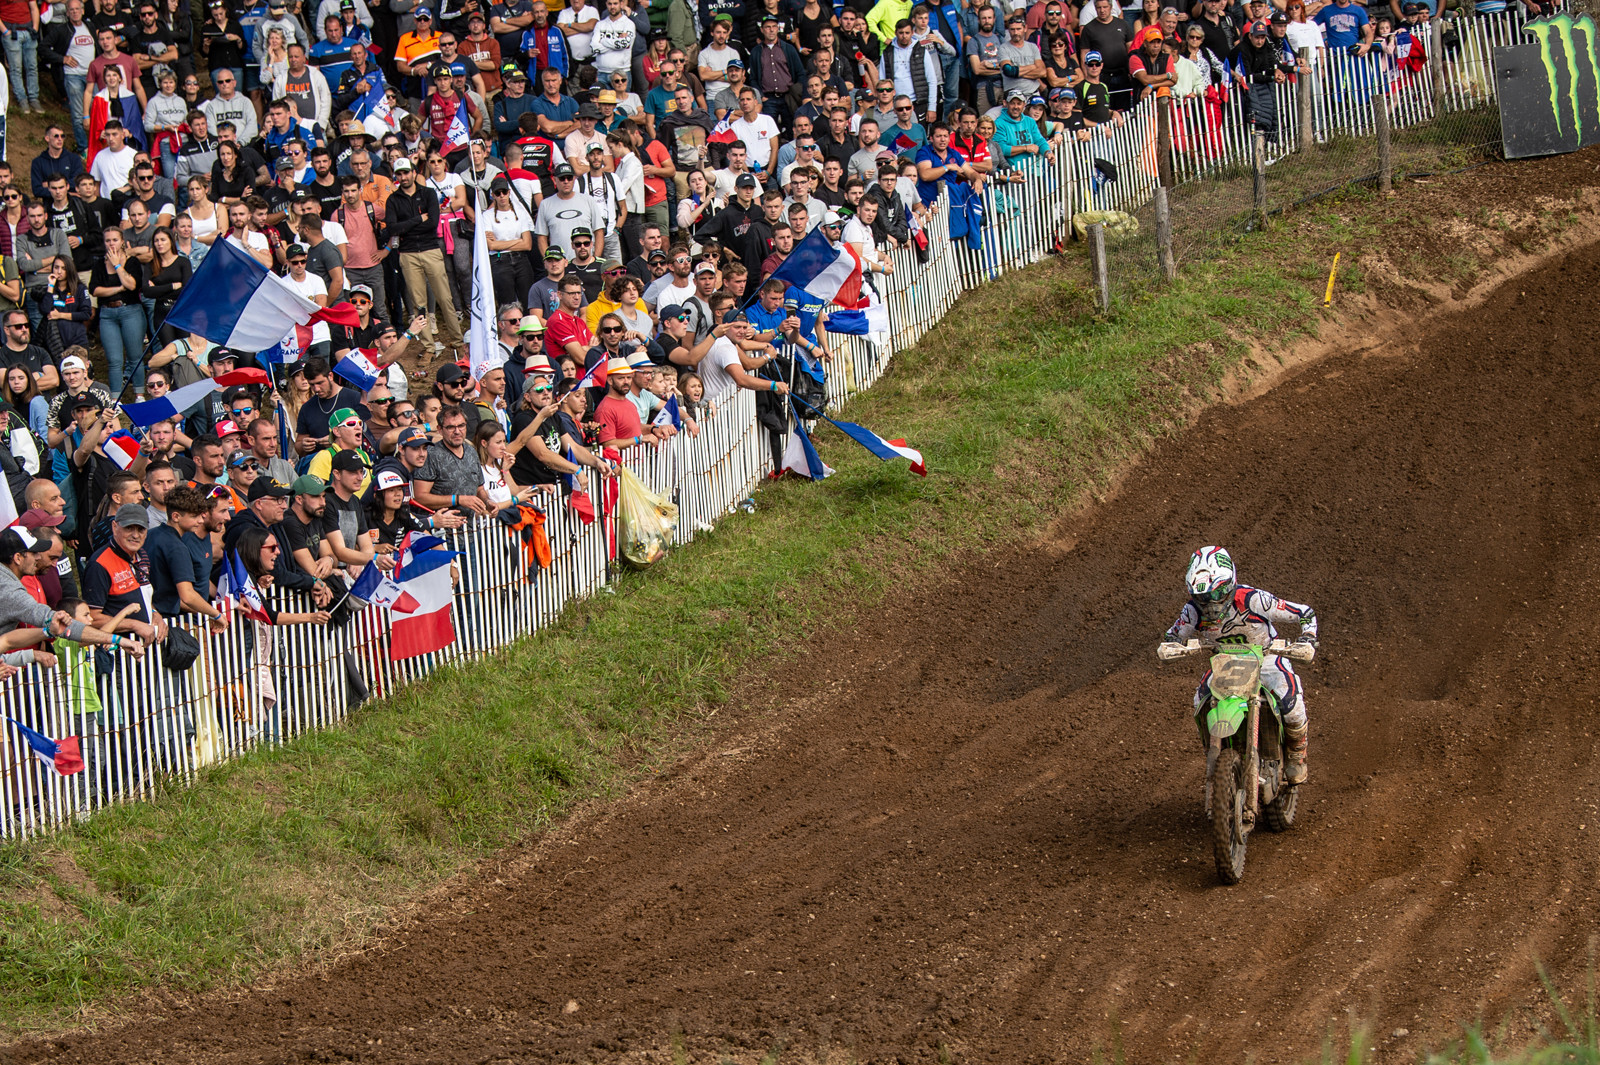 """Romain Febvre: """"I was happy to win the first moto. We saw already in the morning that our speed was much faster than the others so it was a real challenge which of us would win. I was quickly second with a couple of good passes in the first race; I had a really good spot to pass but I didn't want to show it to Jeffrey until I was sure I was close enough. It was tough at the end with the lapped riders but we won and could celebrate that one with the French fans. In the second moto we were already first and second again after a few turns so I knew it would be a challenge to the end. I got around Jeffrey when he made a mistake and I made a few fast laps to make a gap but at the end he was faster in some sectors. Obviously I am a little disappointed. I almost won at home but it's good to be on the podium and I am happy to see so many fans; they deserved the win but I couldn't quite make it happen for them. It's nice to have three of us really close in the points; hopefully we keep it like this to the end and I can find something to make the difference at the last few rounds."""""""